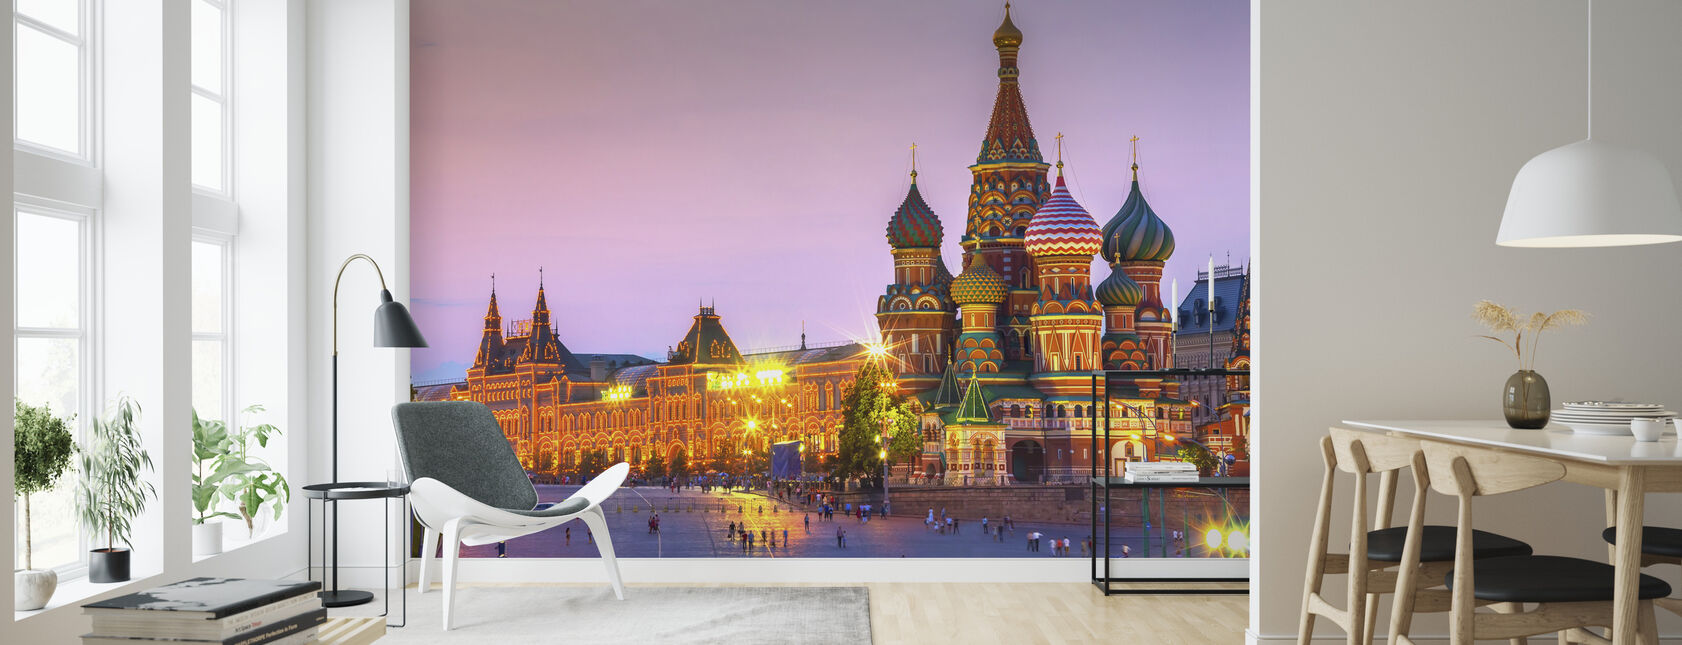 Twilight time of Saint Basils Cathedral - Wallpaper - Living Room